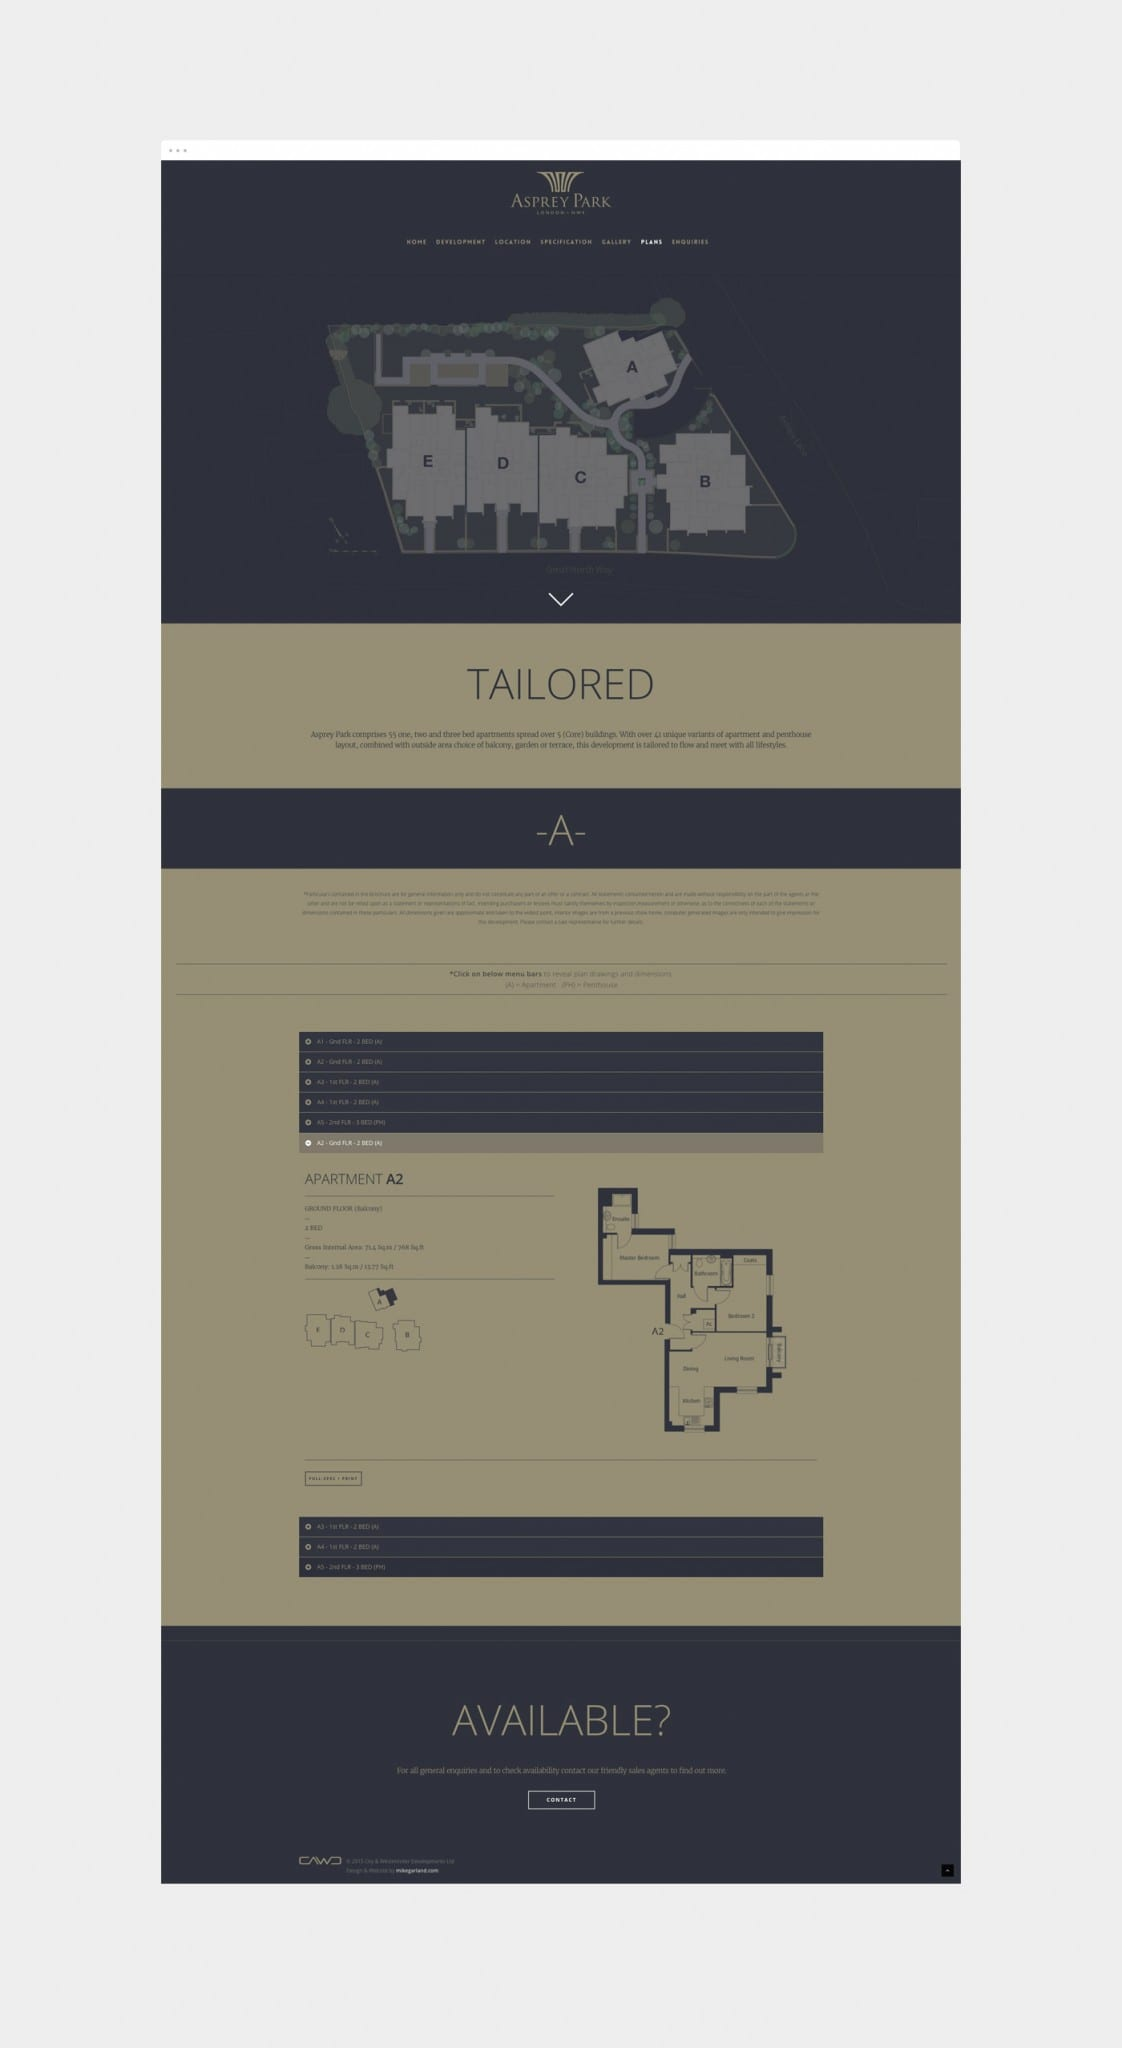 Mike-Garland-Asprey-Park-Website-Plans